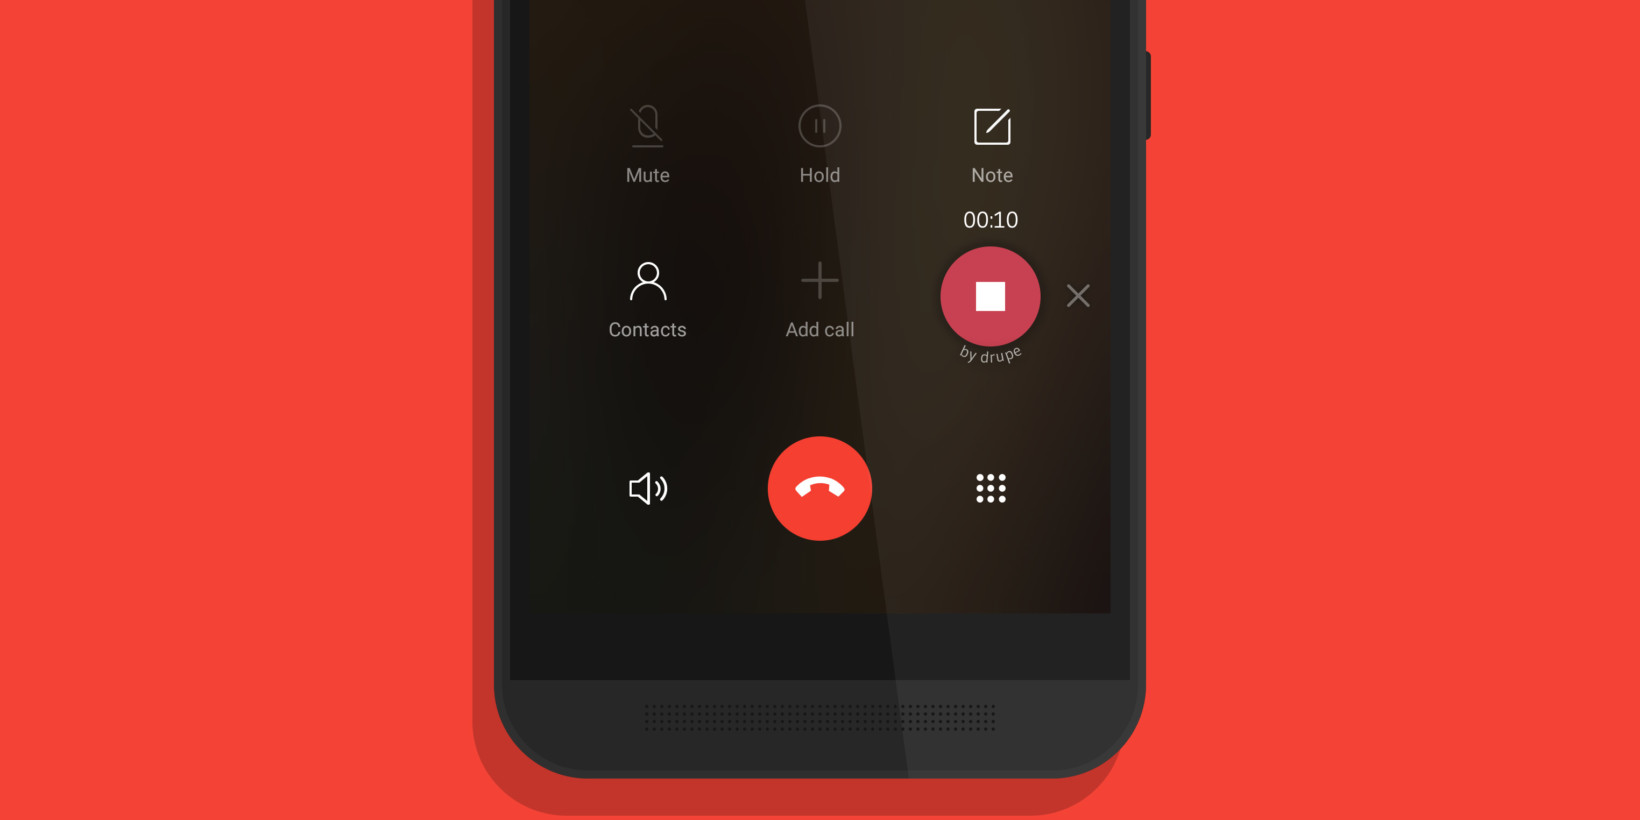 Drupe adds call recording to its Android dialer app